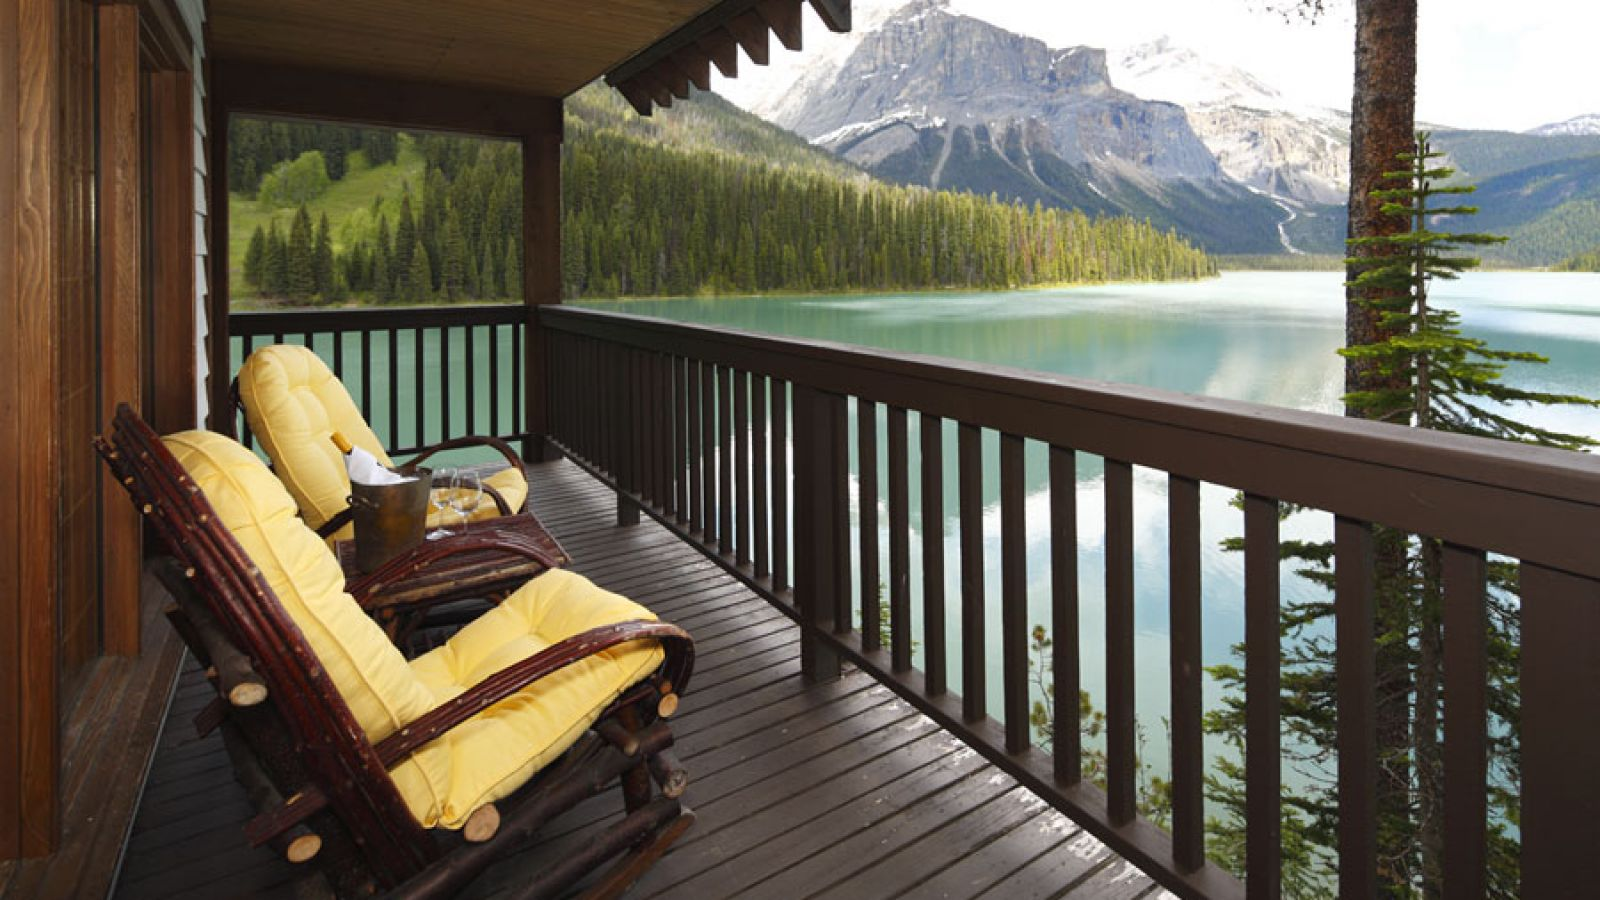 View of Emerald Lake from Point Cabin Balcony.